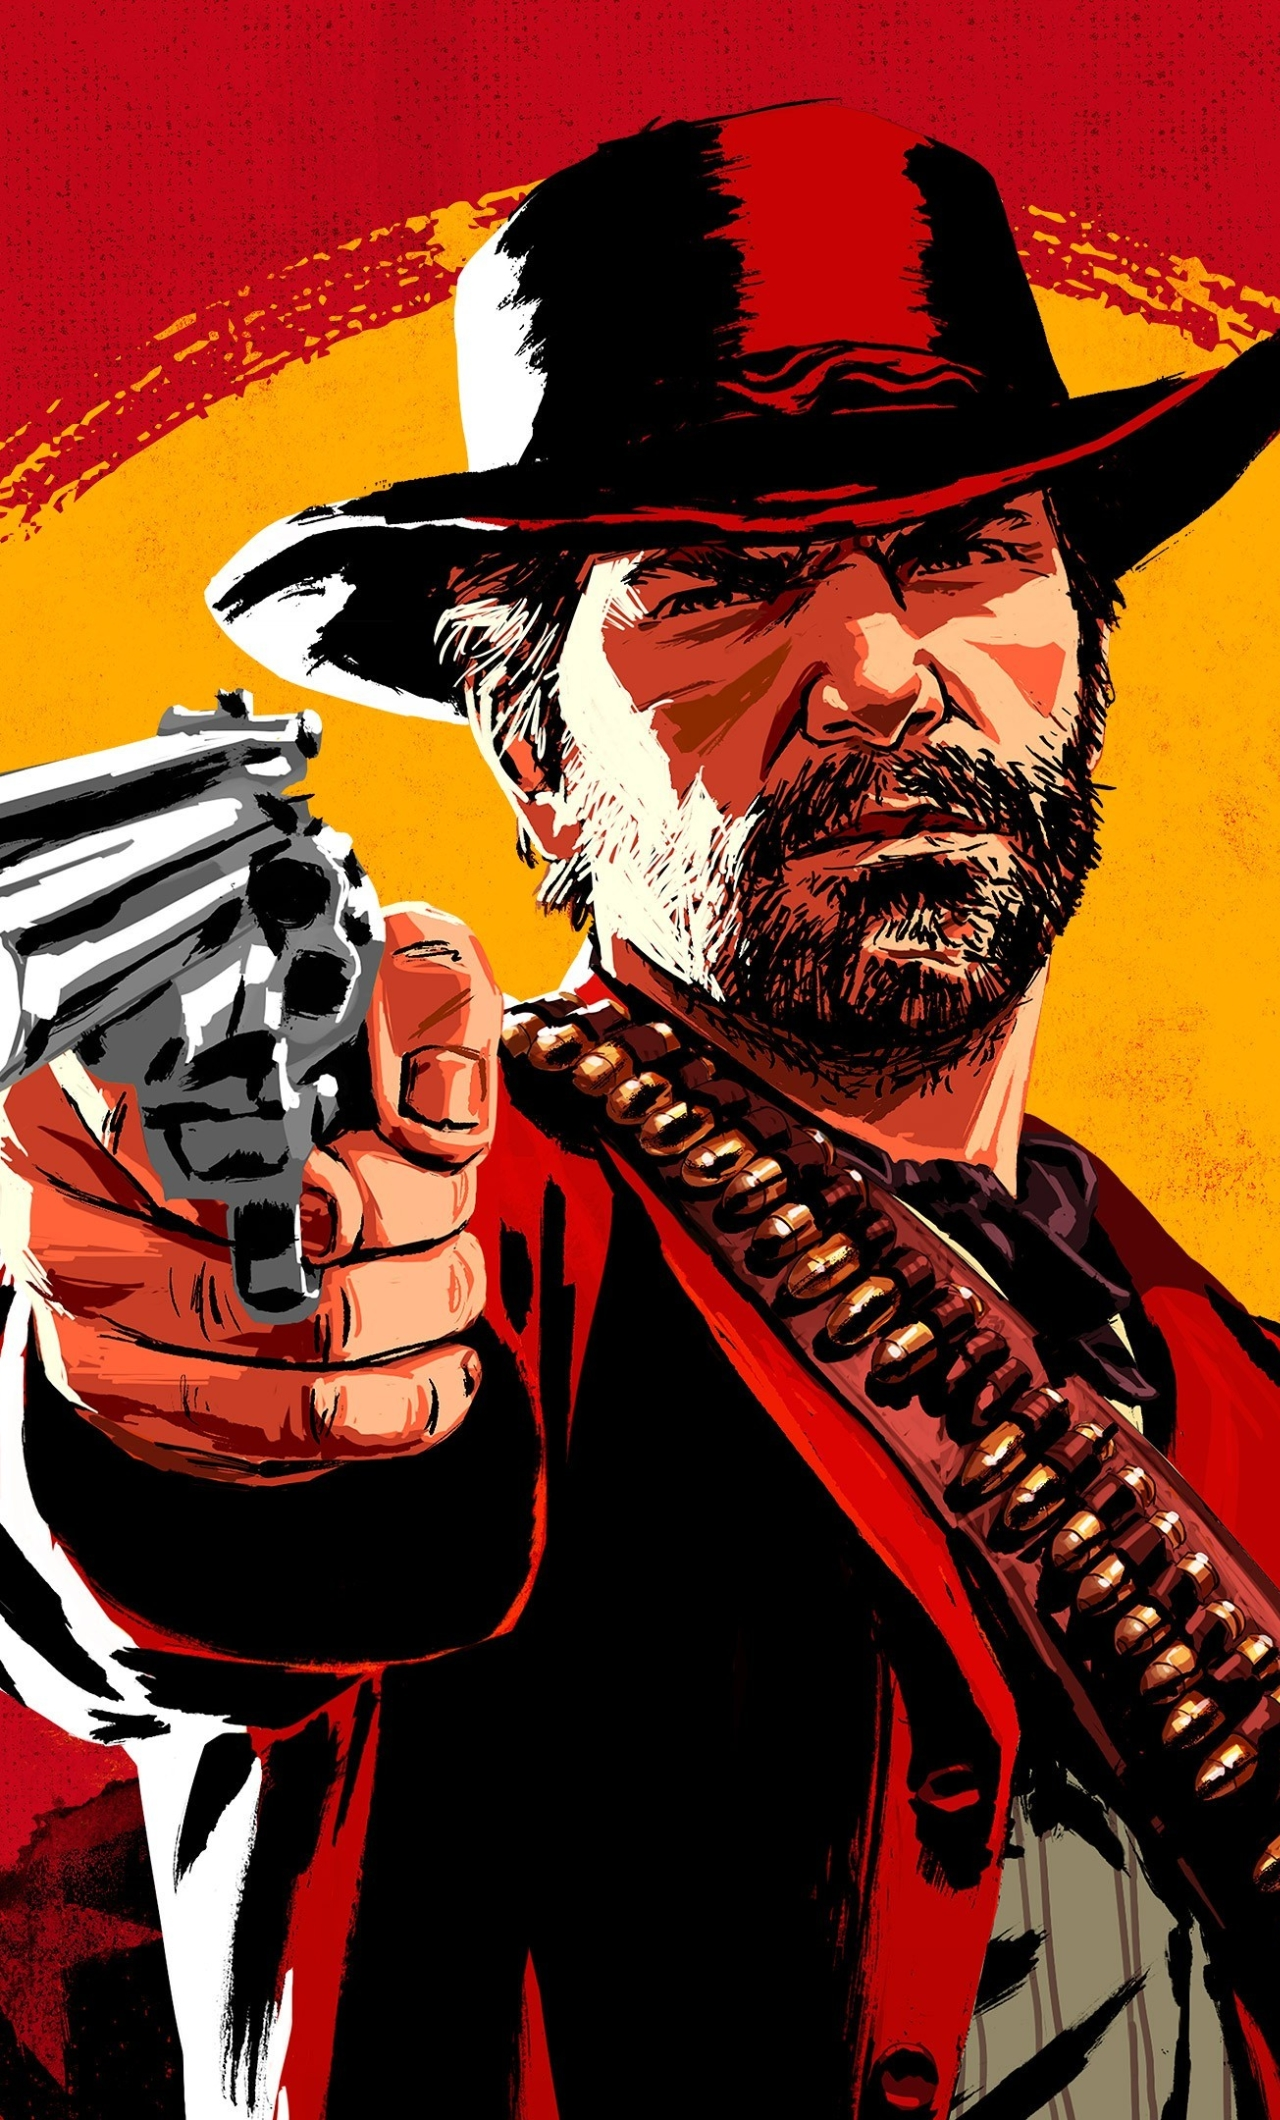 Red Dead Redemption Iphone Wallpaper Hd Free Download